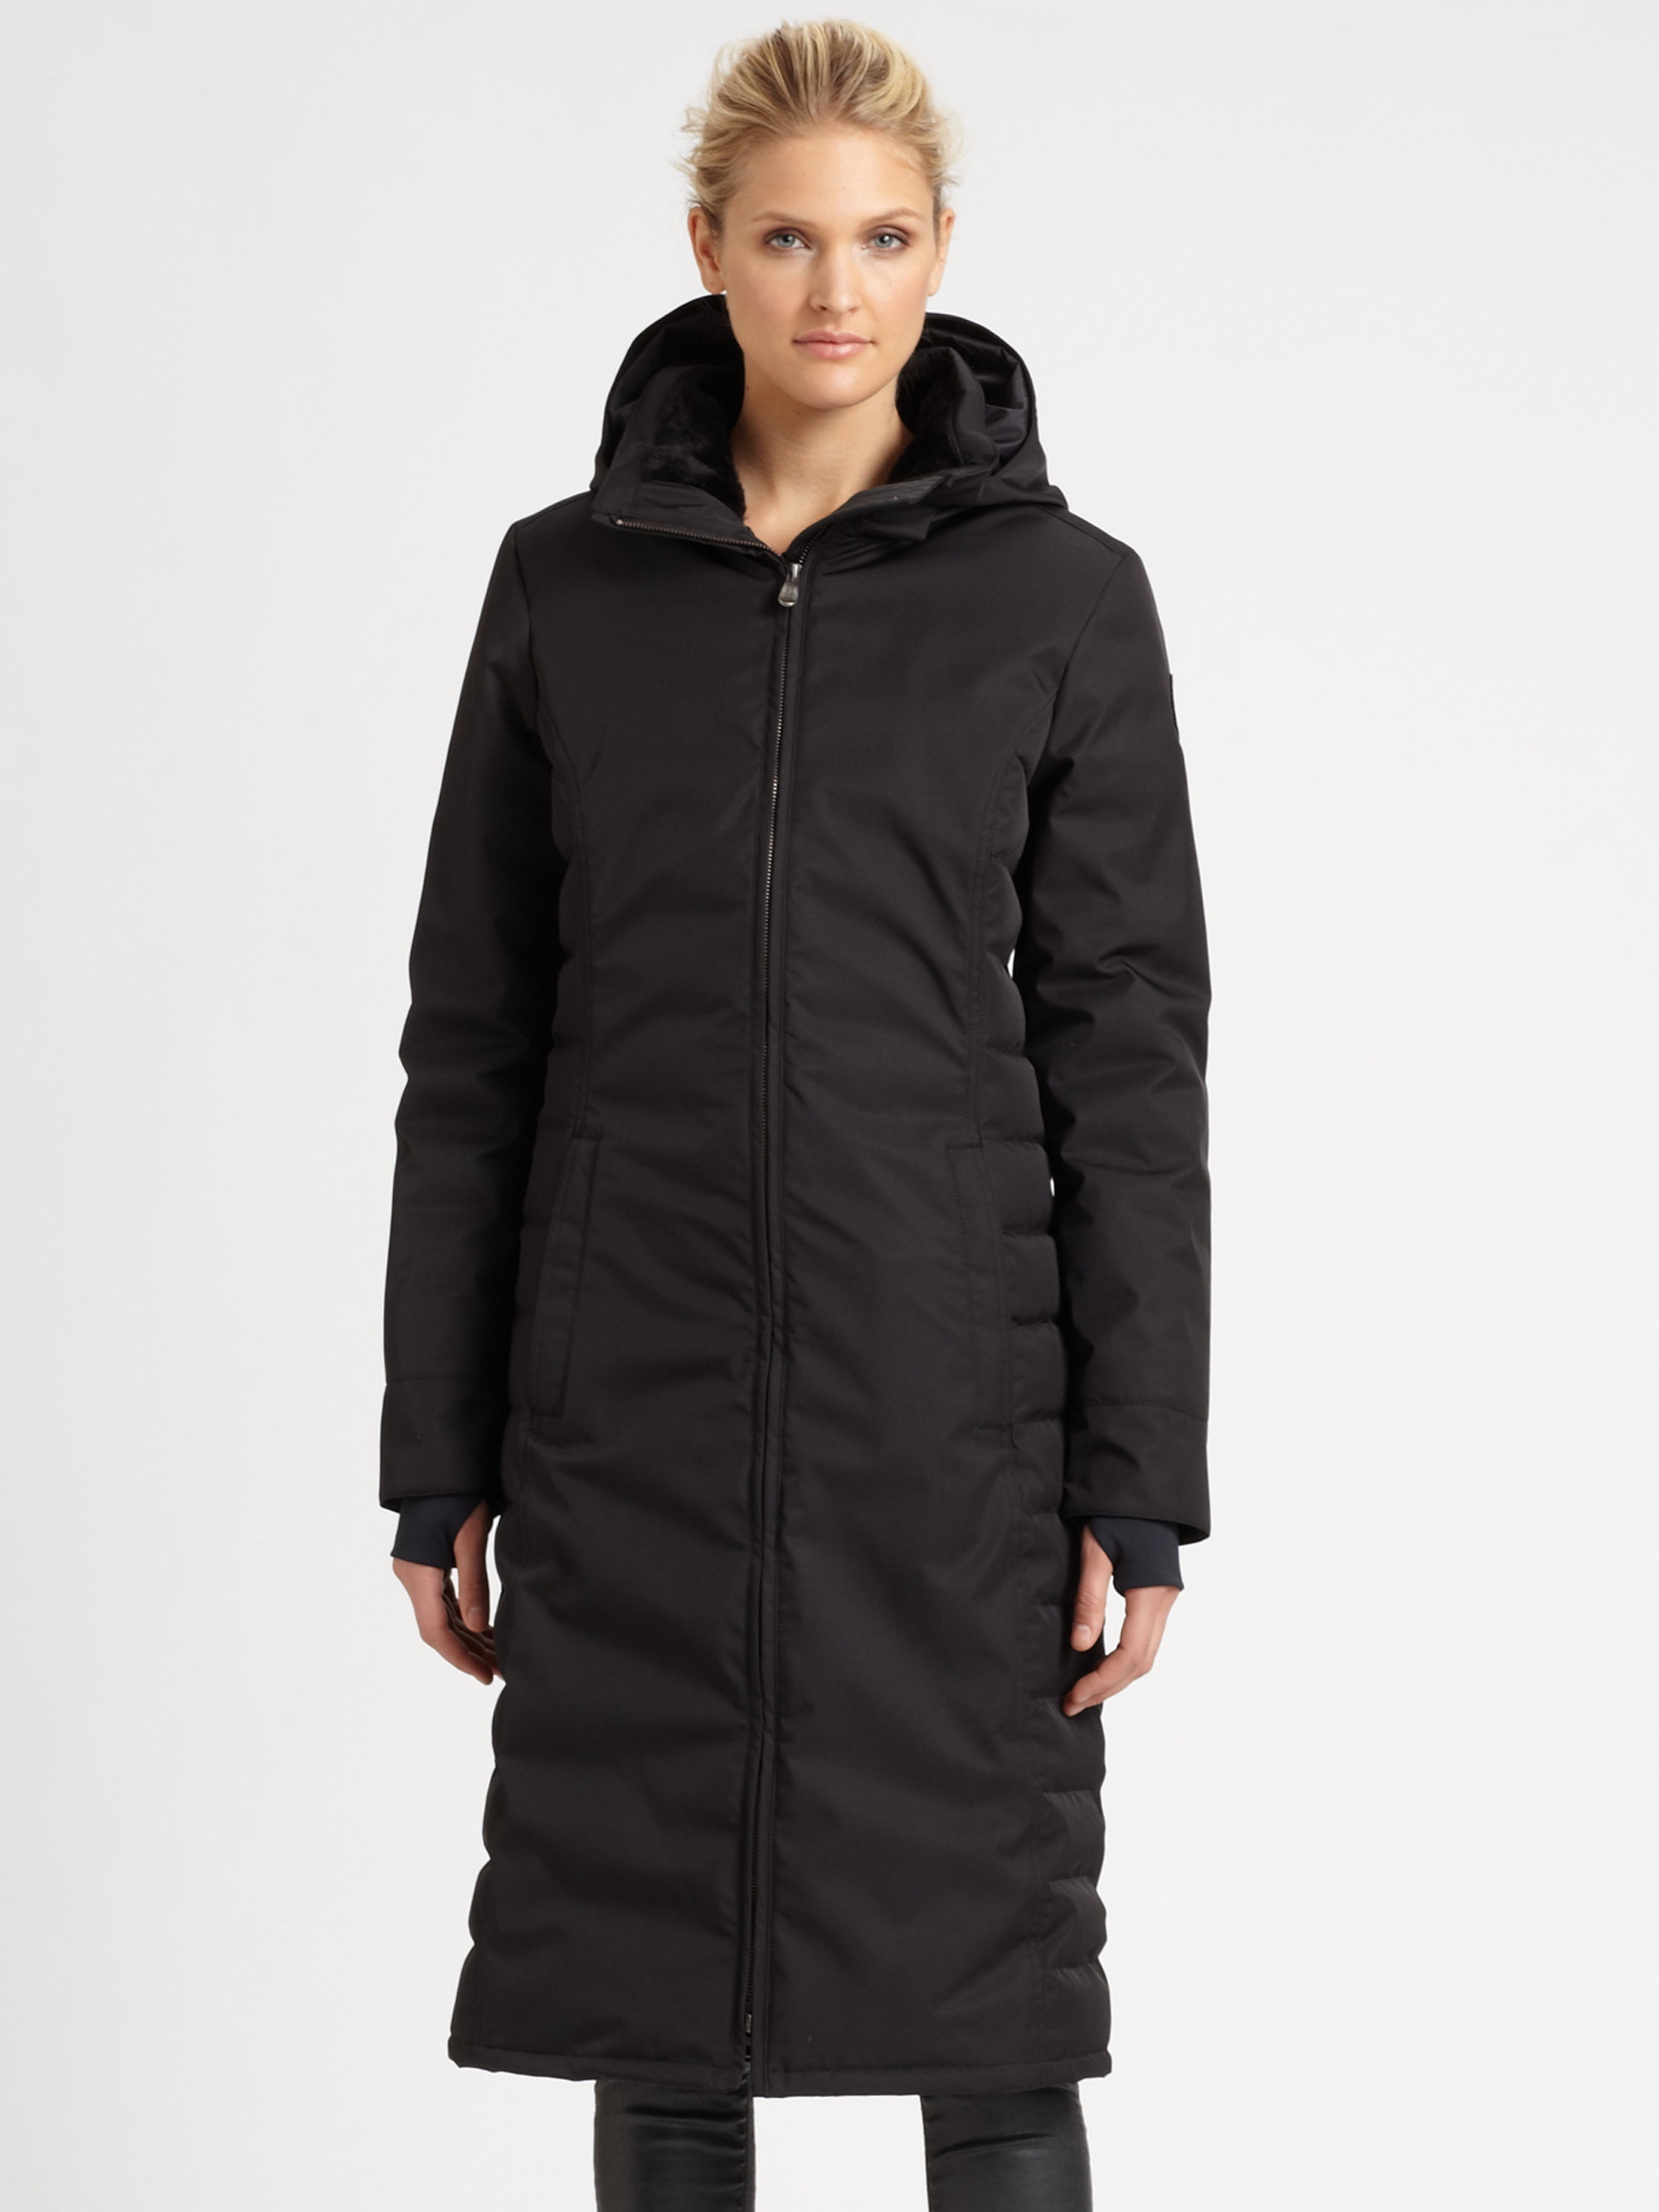 Look fantastic no matter what the weather! Discover a huge selection of women's outerwear at Hudson's Bay.